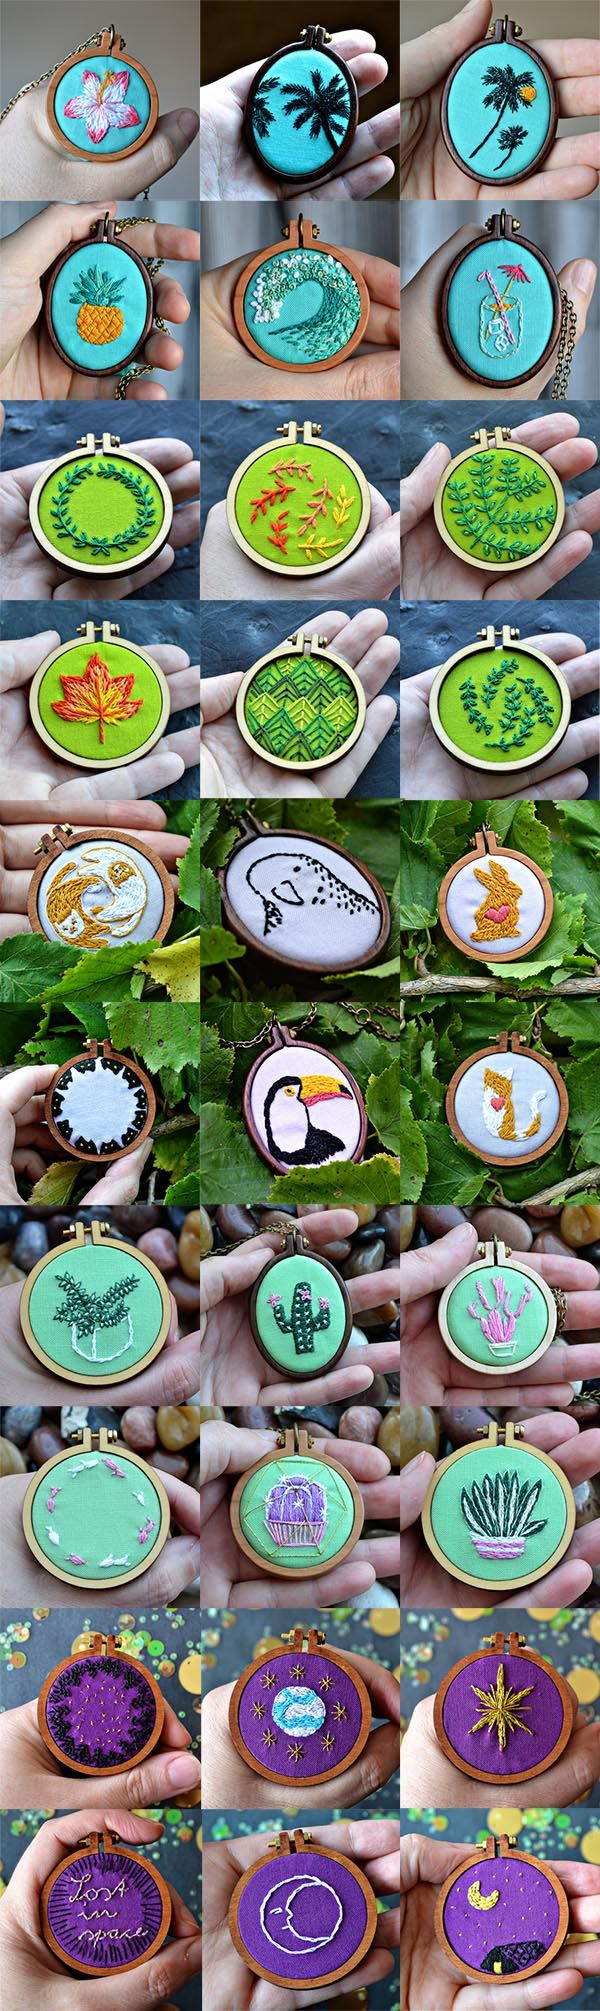 Miniature embroidery – learn all about tiny embroidery